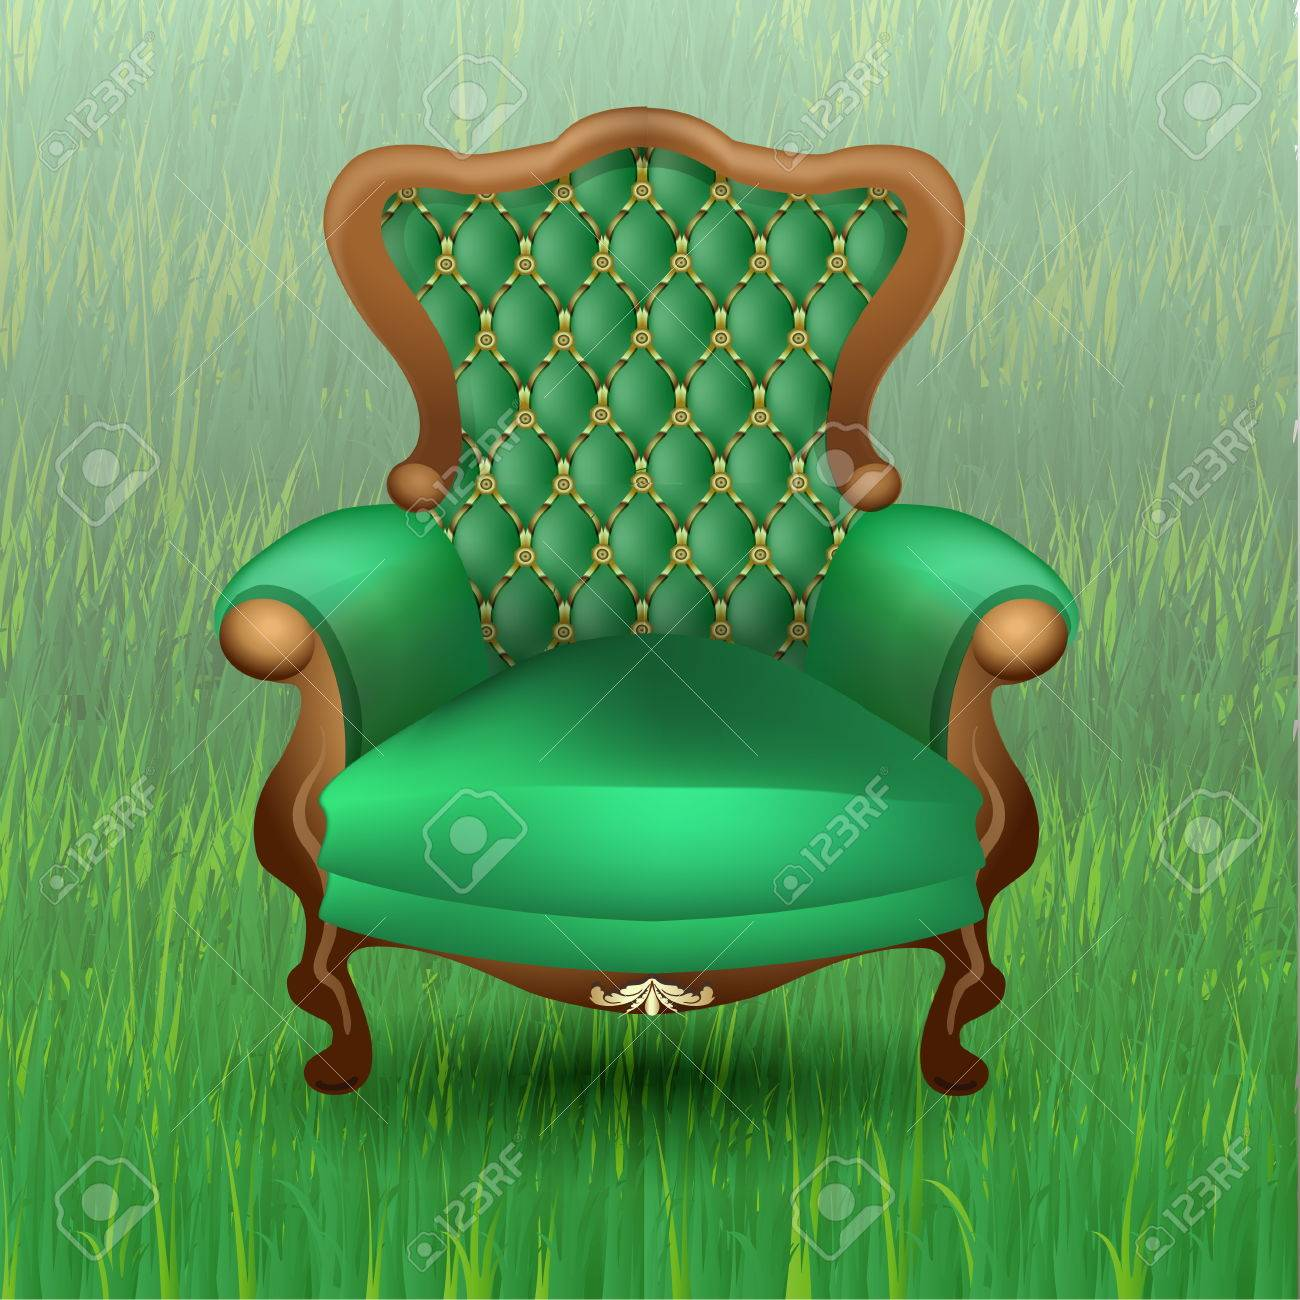 Green Upholstered Chair Antique Luxury Chair With Wooden Legs And Upholstered In Green